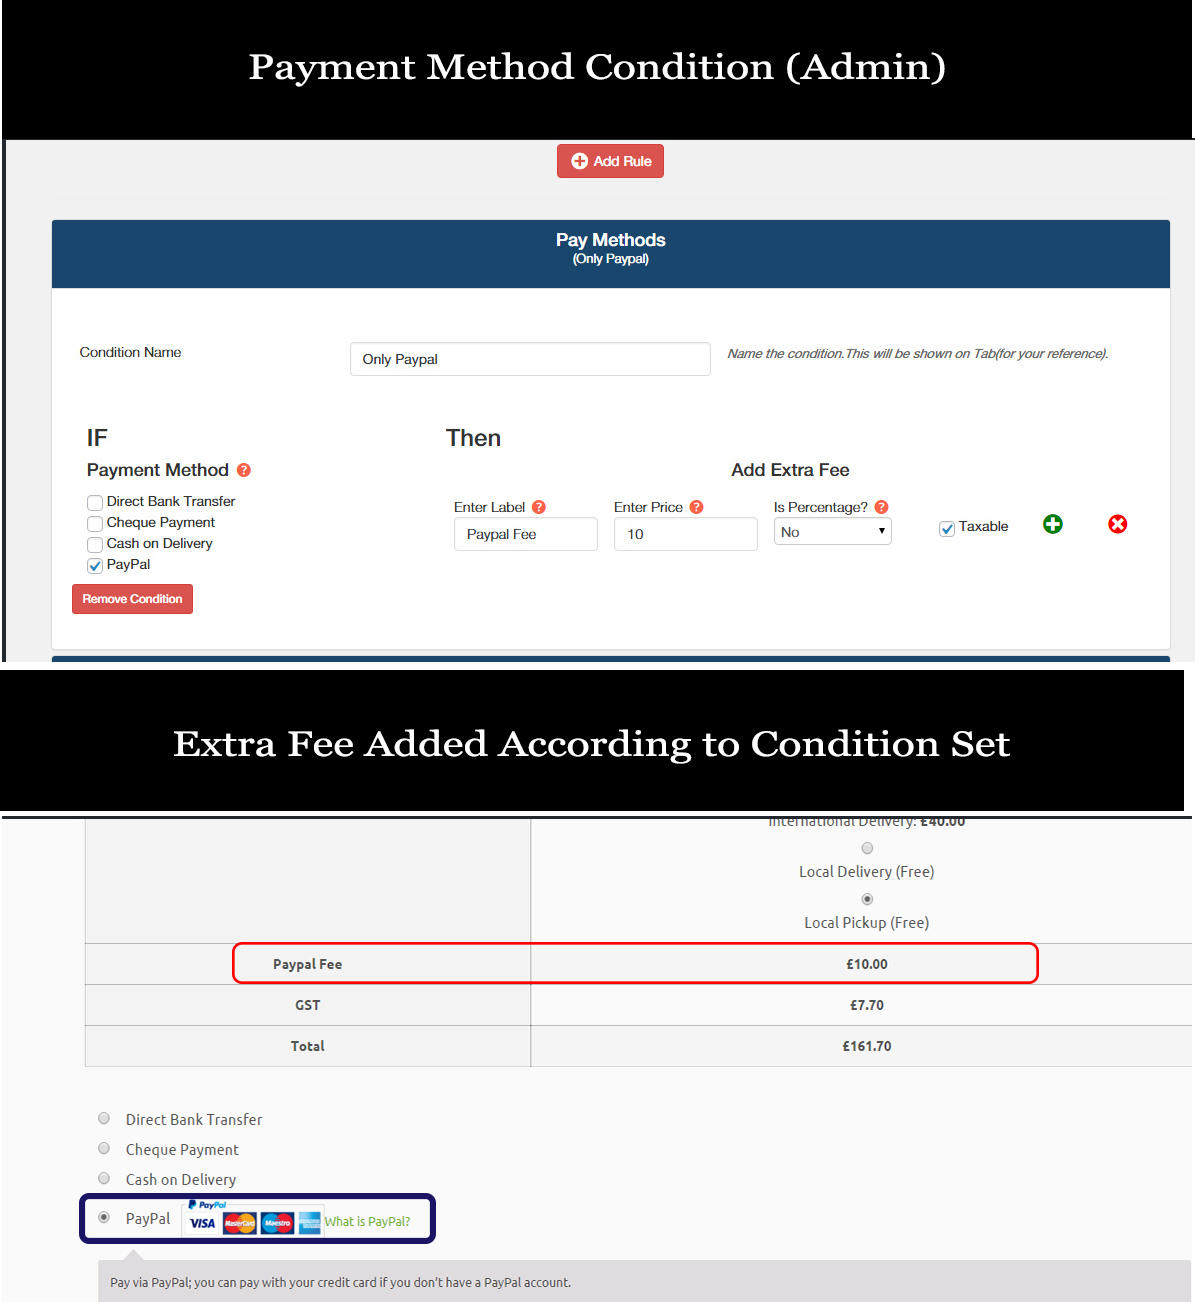 Payment Method Condition